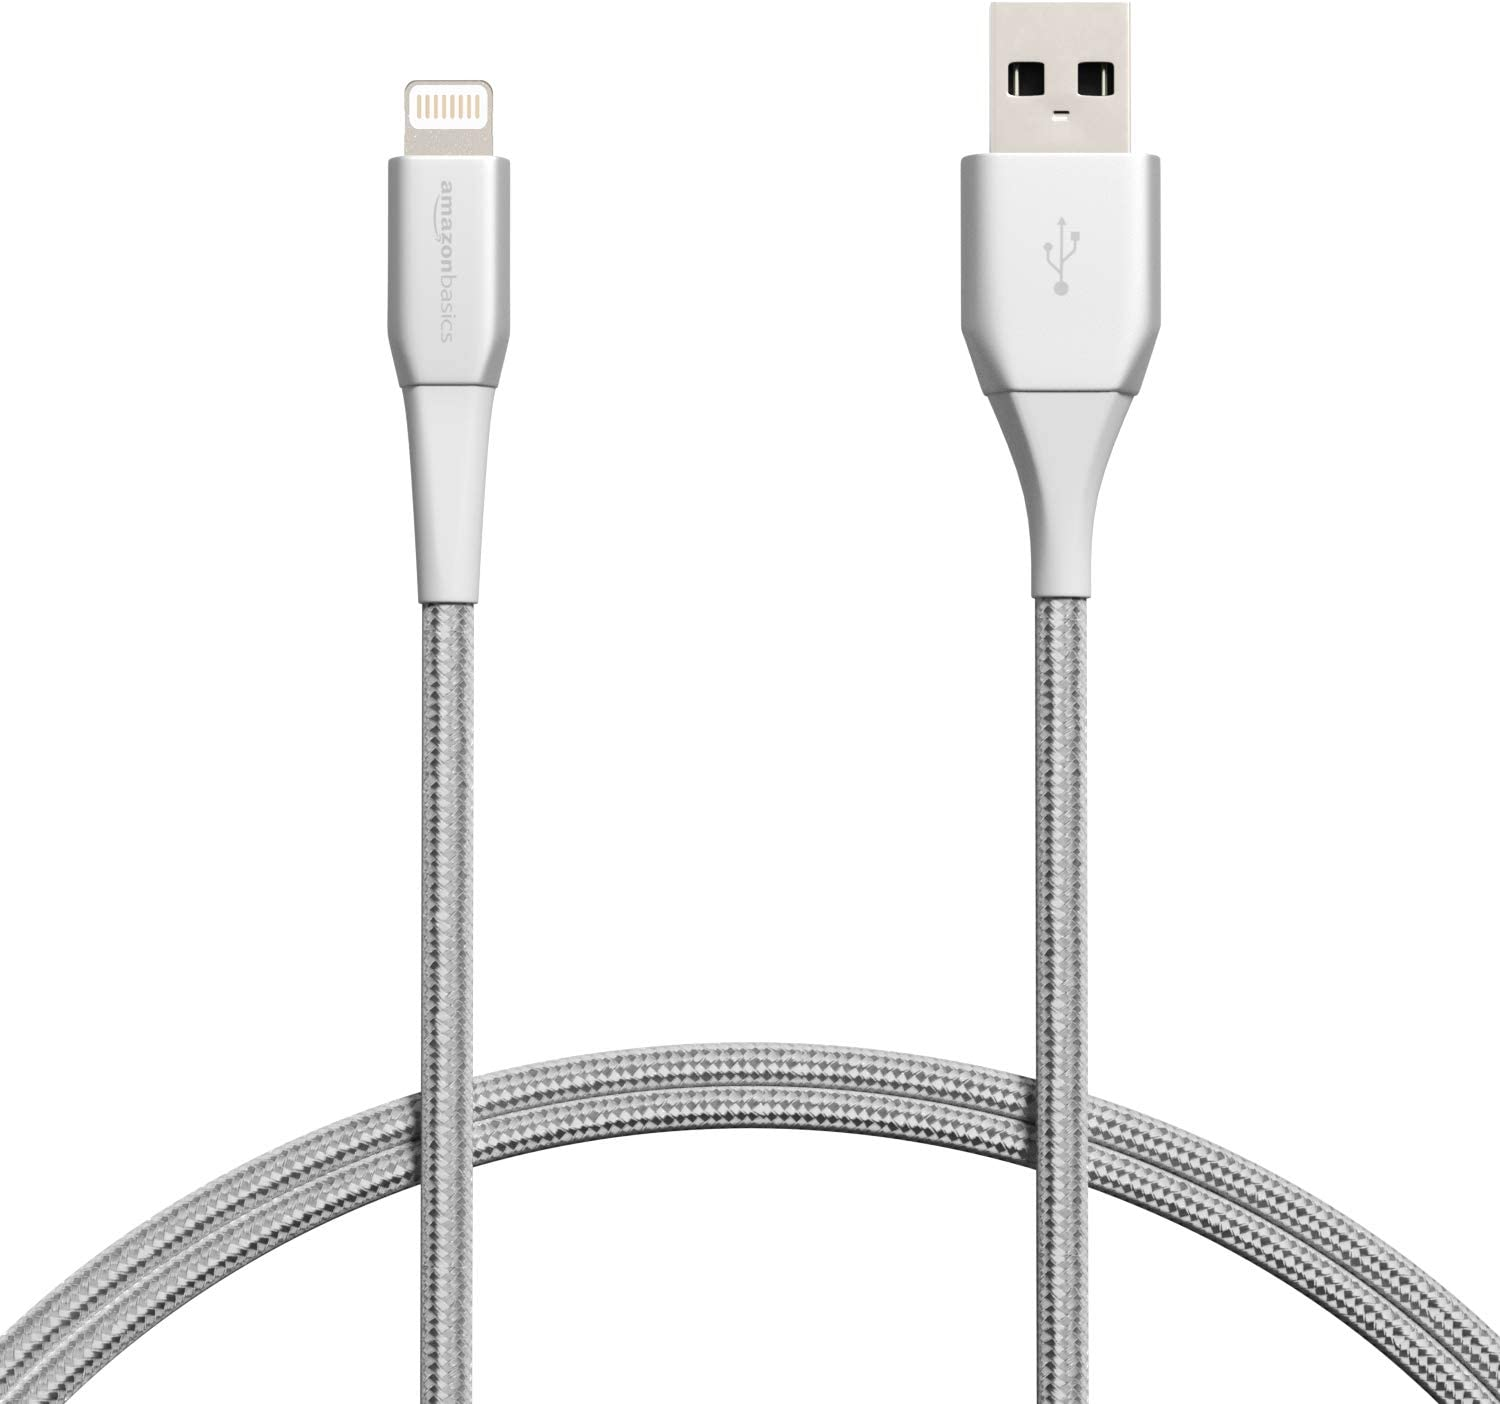 AmazonBasics Premium Double Nylon Braided Lightning to USB Cable - MFi Certified Apple iPhone Charger, Silver, 3-Foot